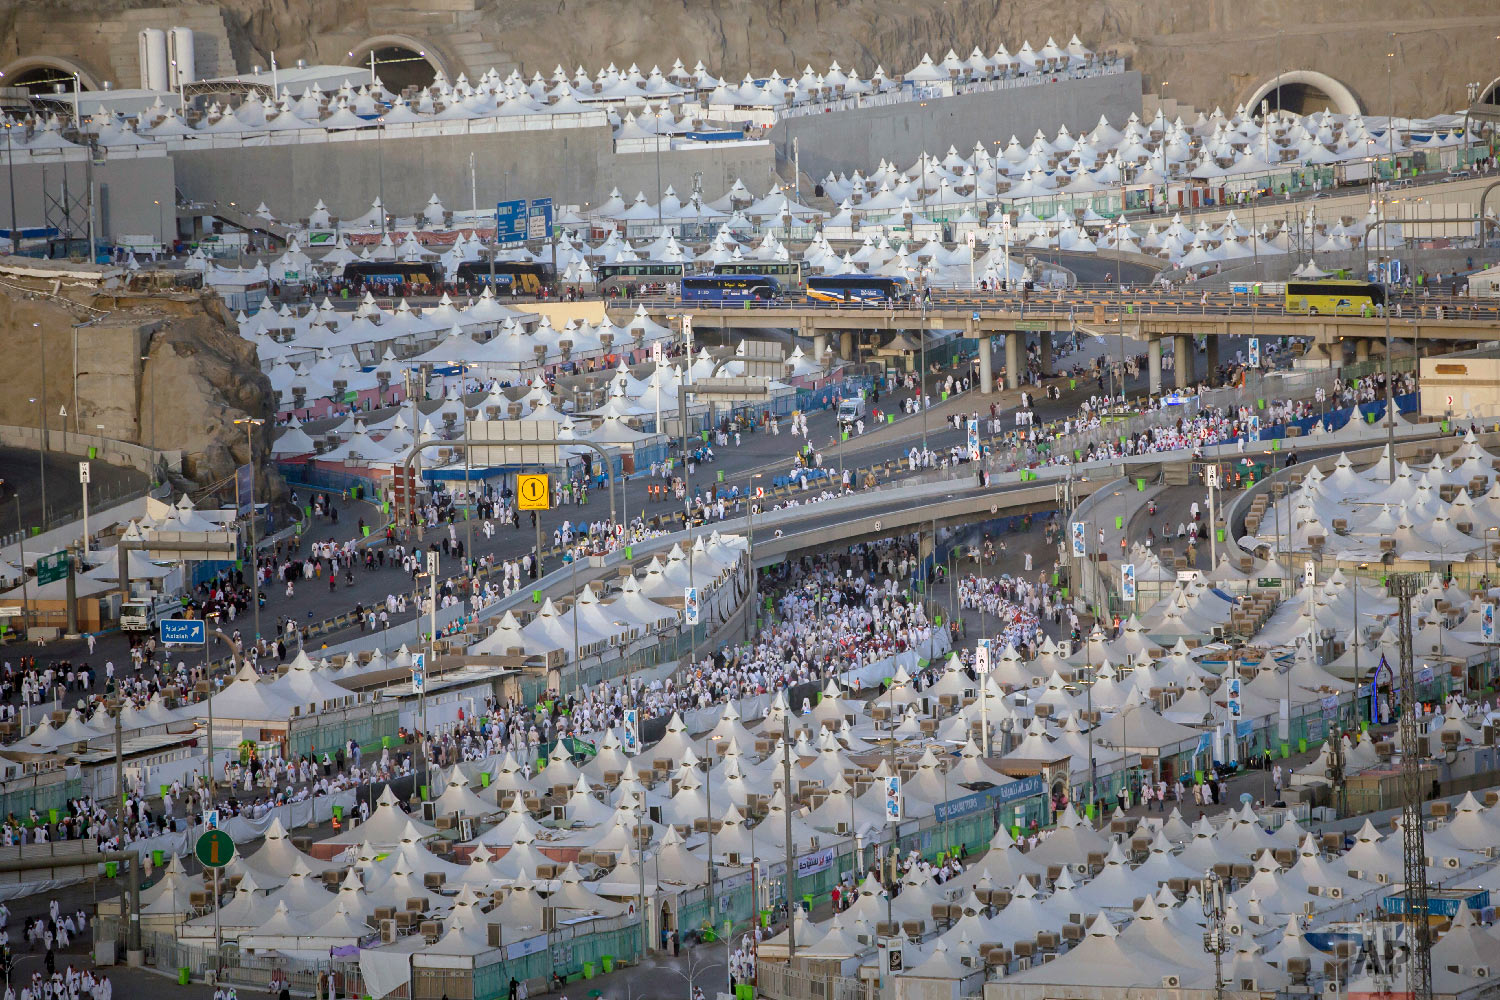 Muslim pilgrims walk back to their tents during the annual Hajj pilgrimage on the first day of Eid al-Adha in Mina, outside the holy city of Mecca, Saudi Arabia, Tuesday, Aug. 21, 2018. The five-day pilgrimage represents one of the five pillars of Islam and is required of all able-bodied Muslims once in their life. (AP Photo/Dar Yasin)